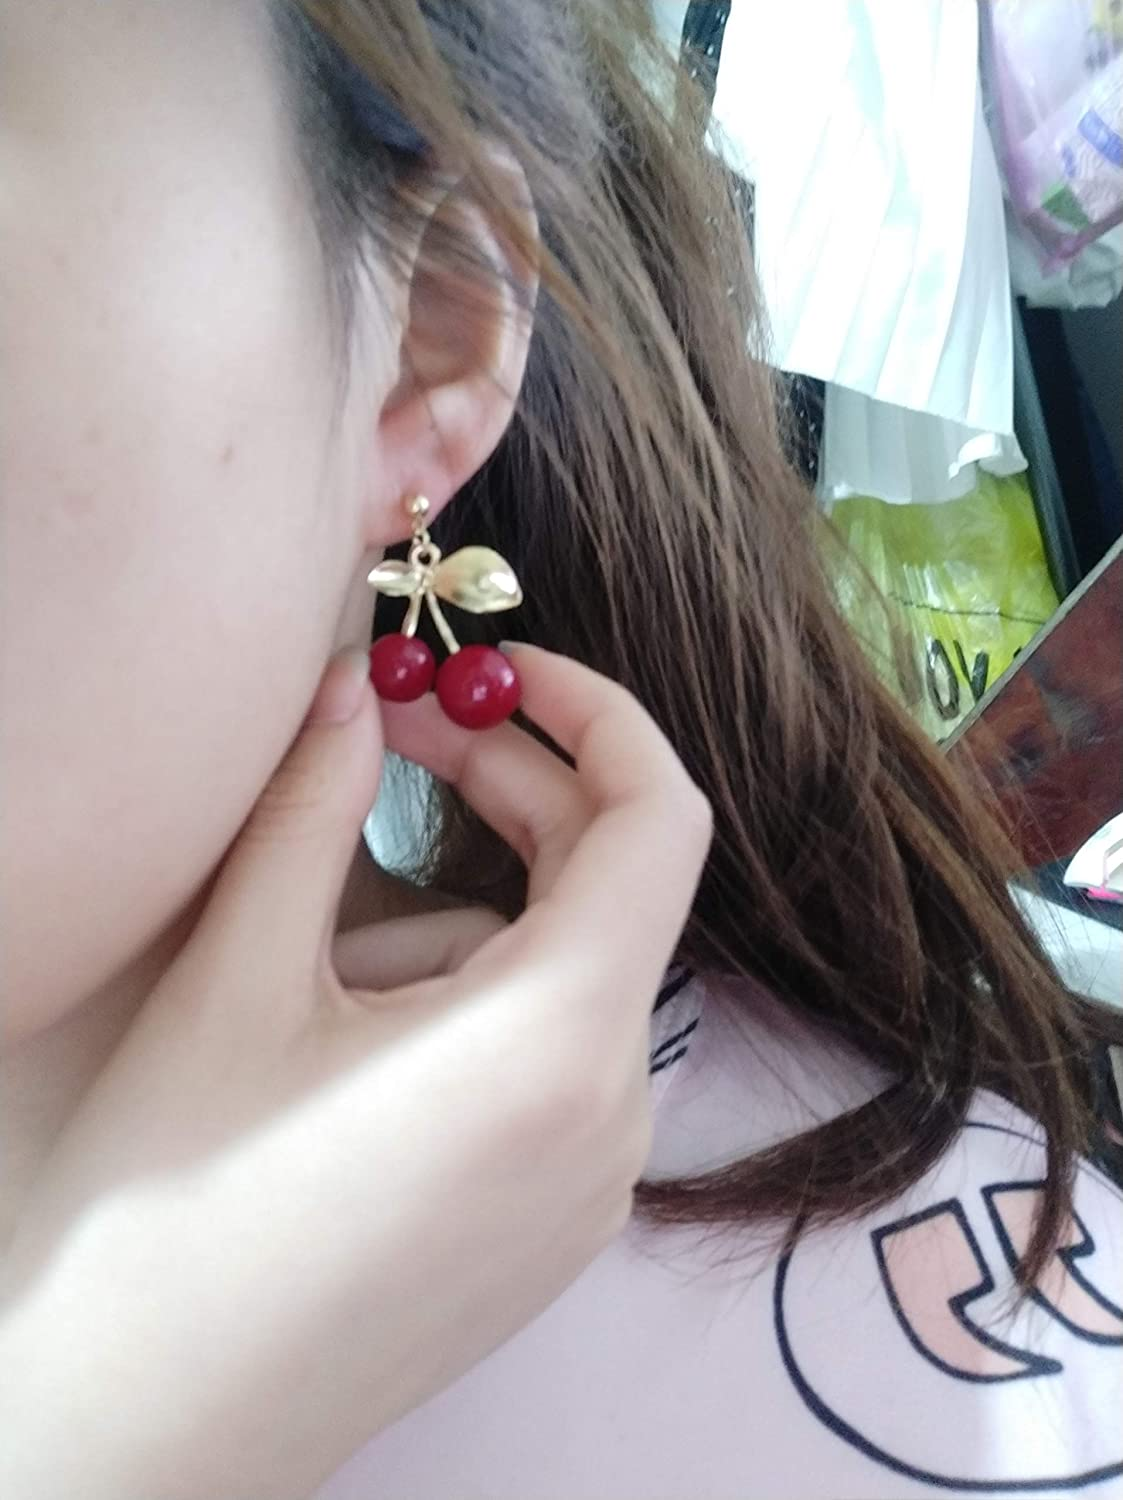 YINLIN Sweet Vintage Red Big Cherry Earrings Fruit with Charm Gold Leaf Stud Earring